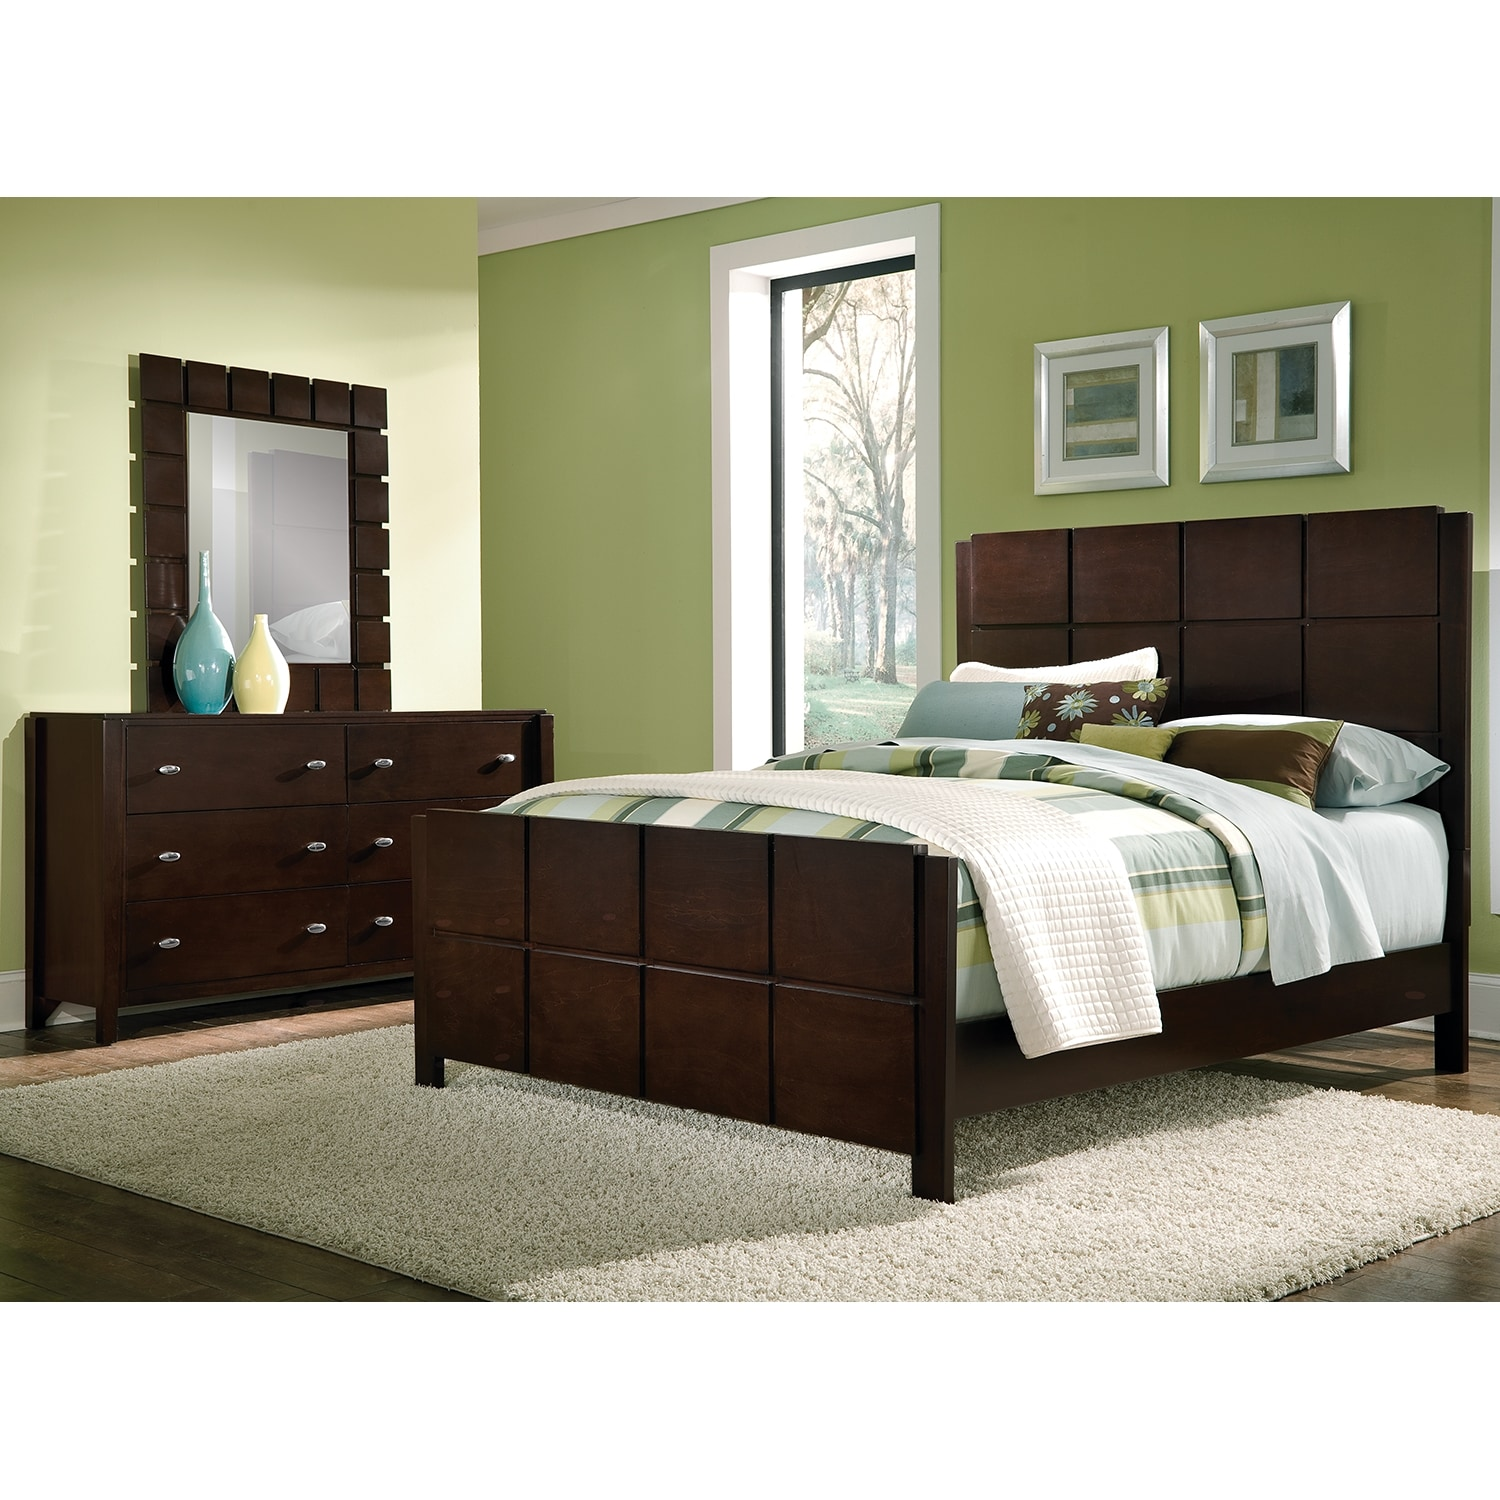 mosaic 5 piece king bedroom set dark brown american signature furniture. Black Bedroom Furniture Sets. Home Design Ideas